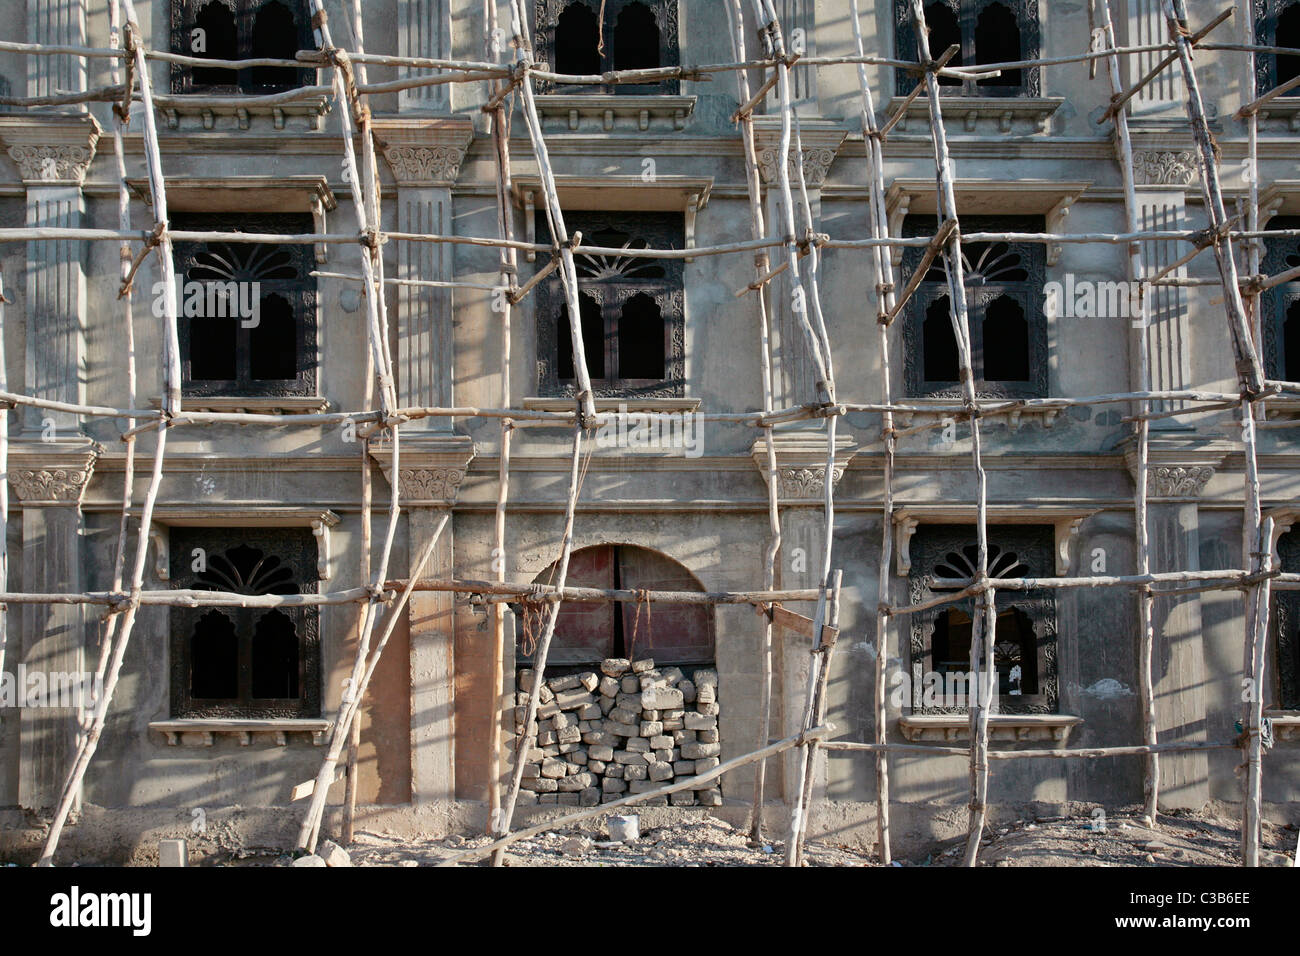 Wooden scaffolding around an old building in Zanzibar's Stone Town - Stock Image